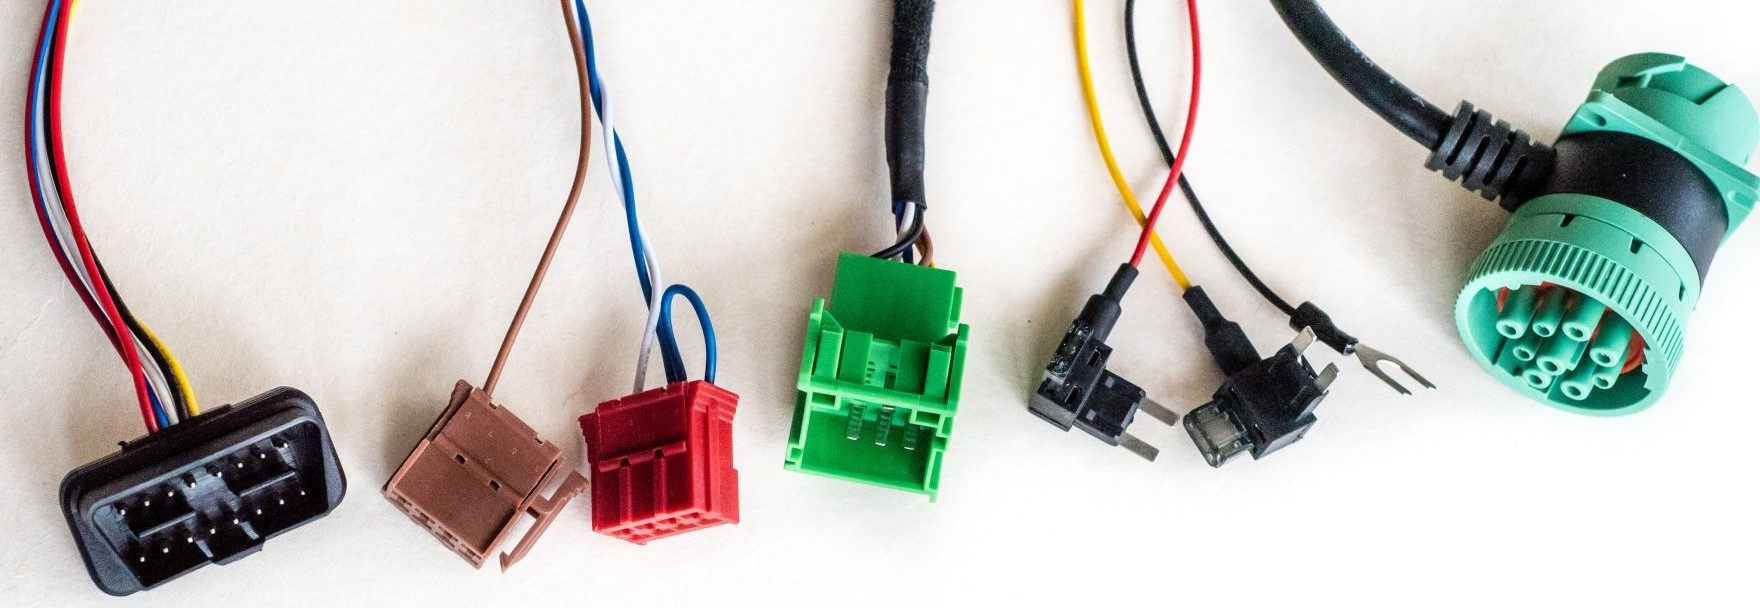 Install Gps Trackers Up To 50 Faster With Installation Harnesses Electrical Wiring Connector Types